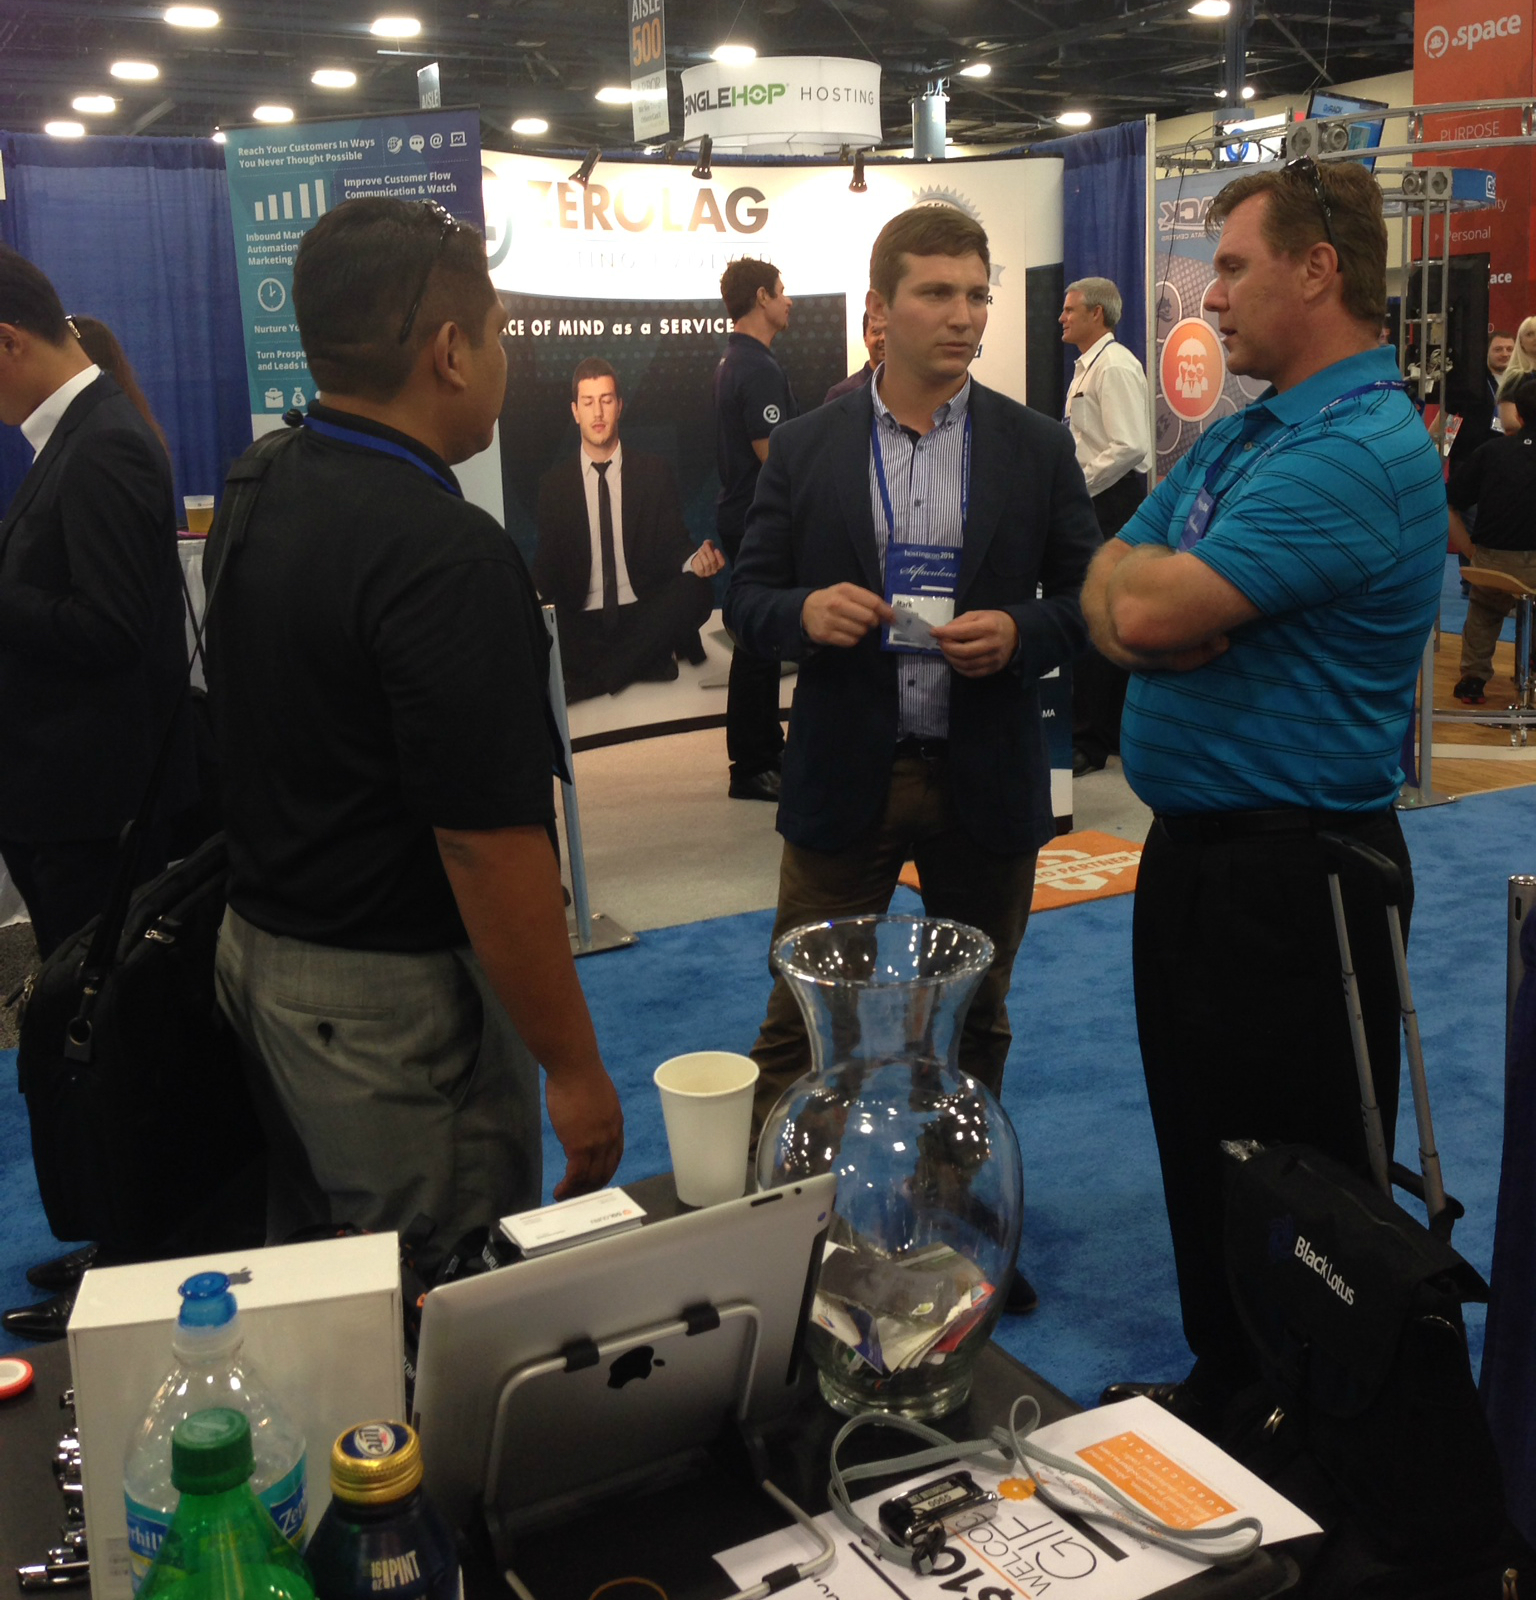 HostingCon Global 2014